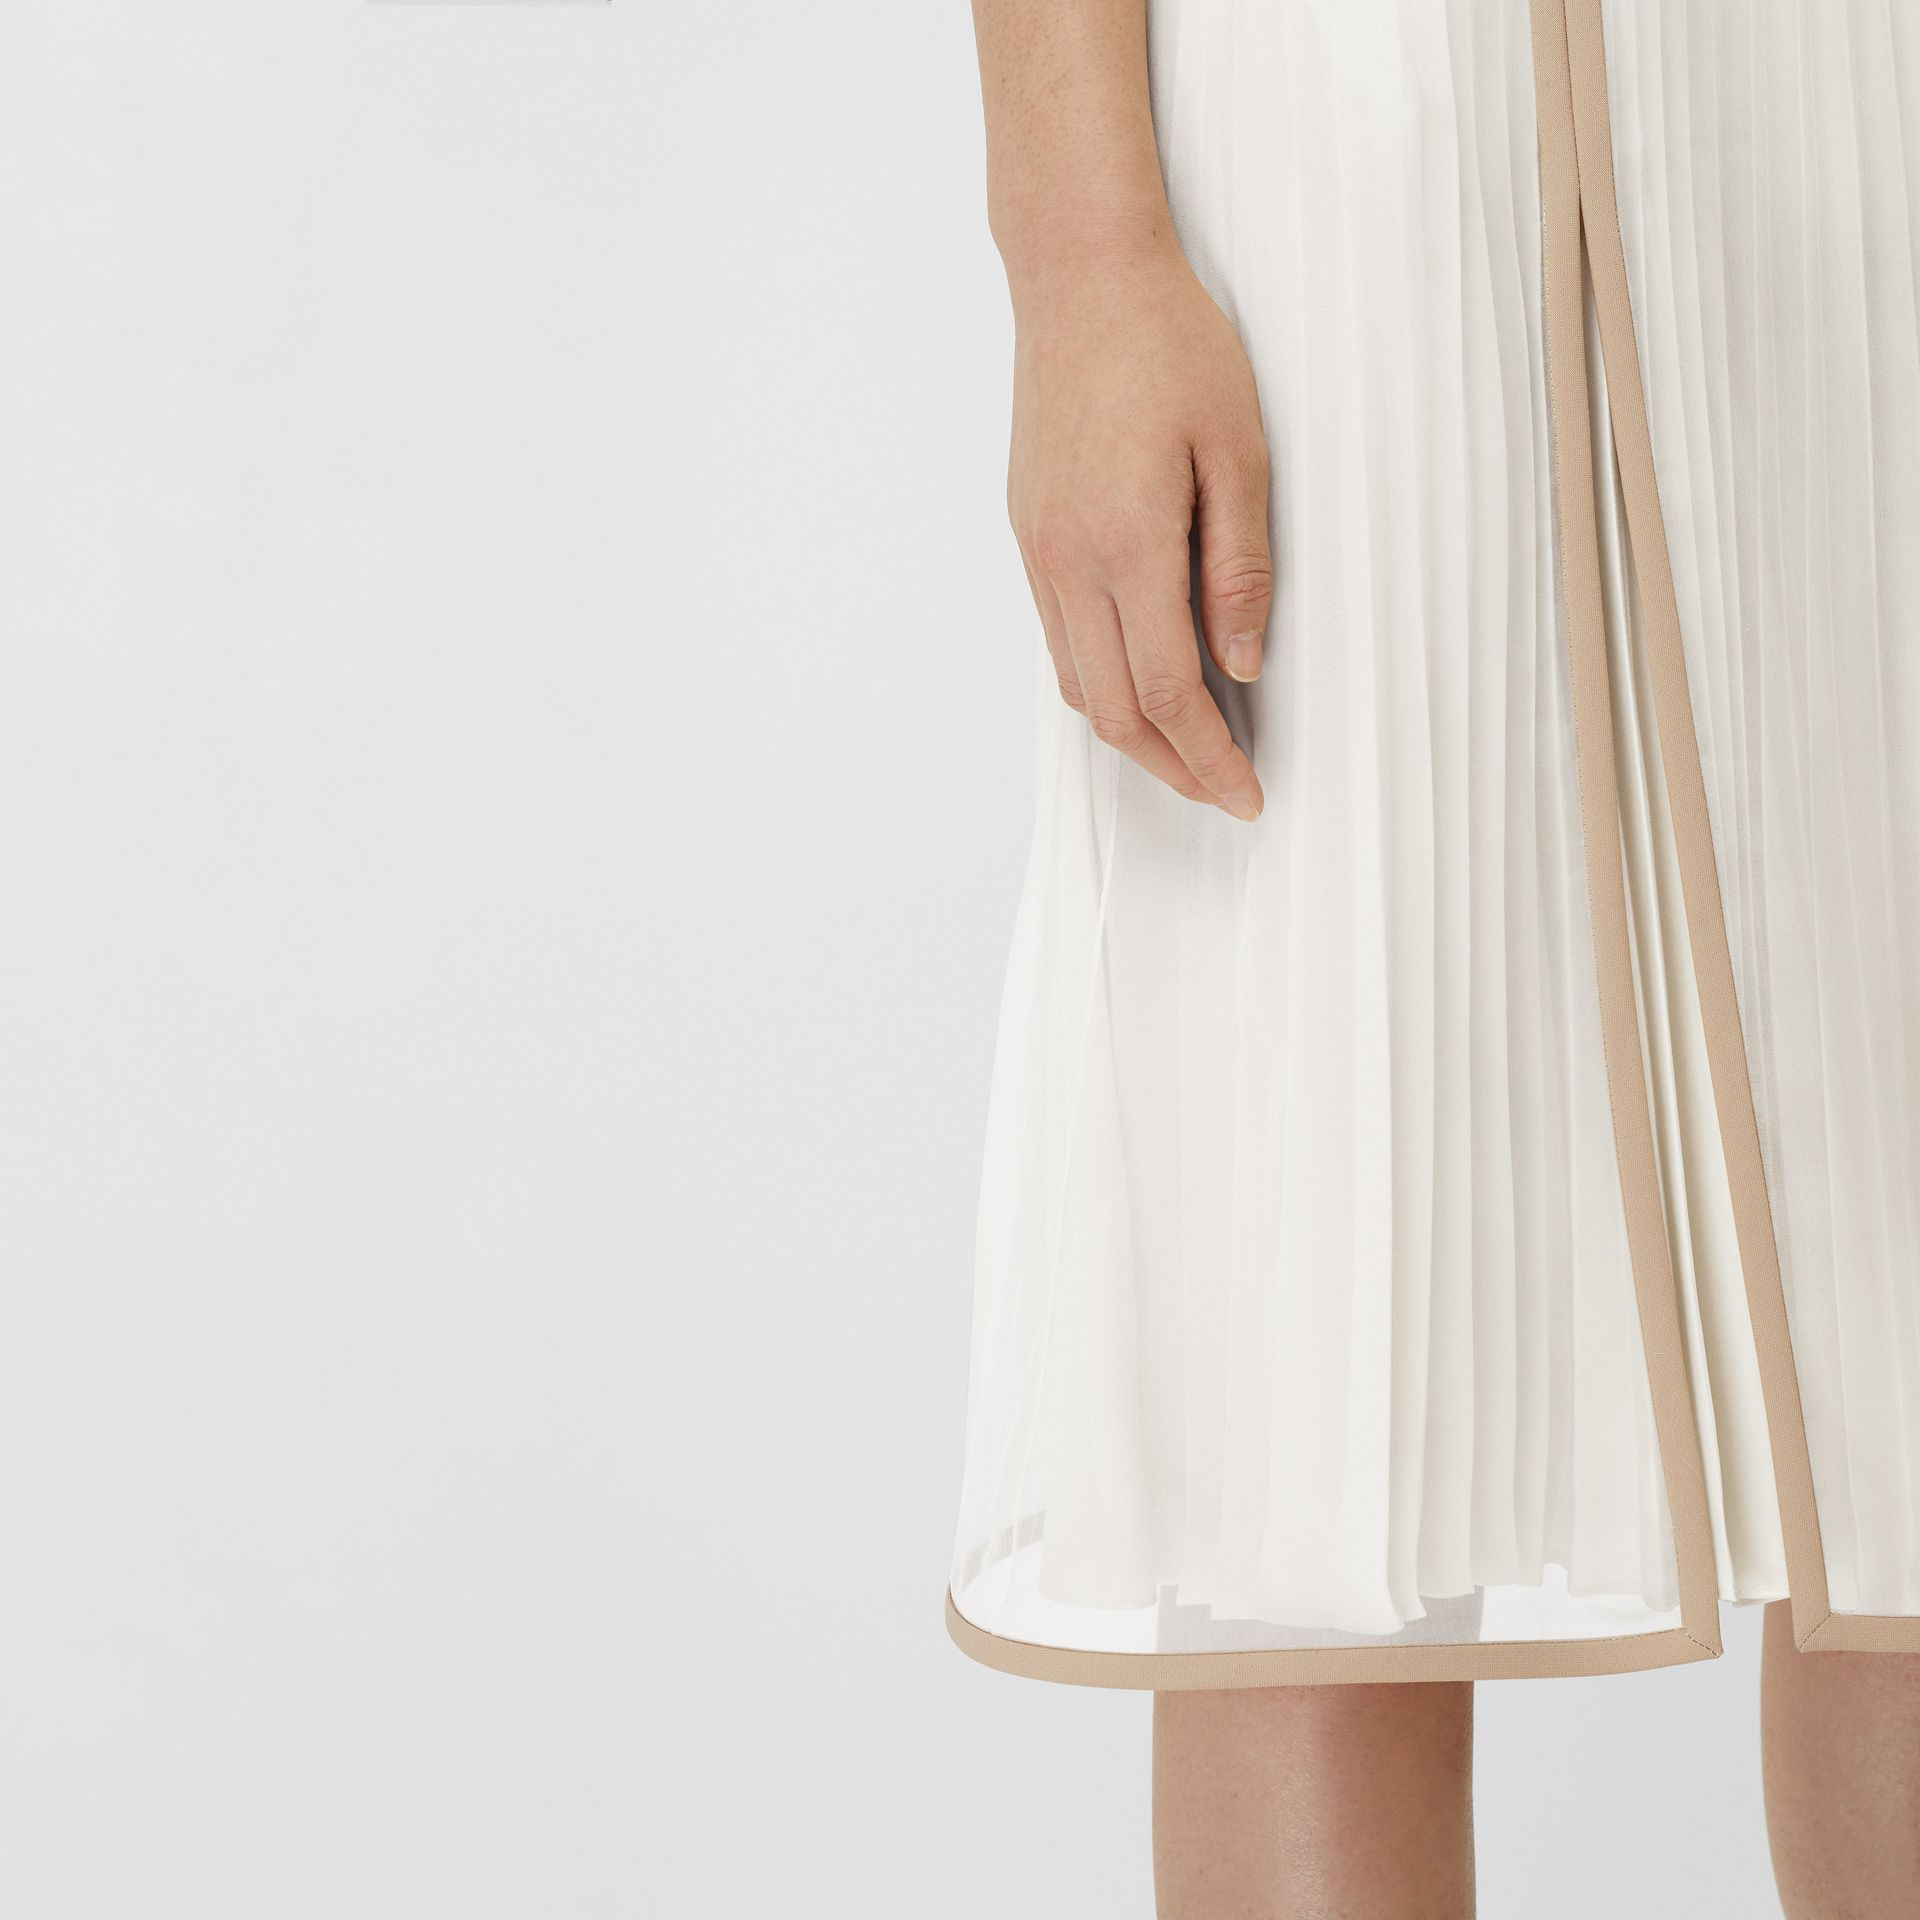 Chiffon Panel Silk Pleated Skirt in Magnolia - Women | Burberry Canada - gallery image 1